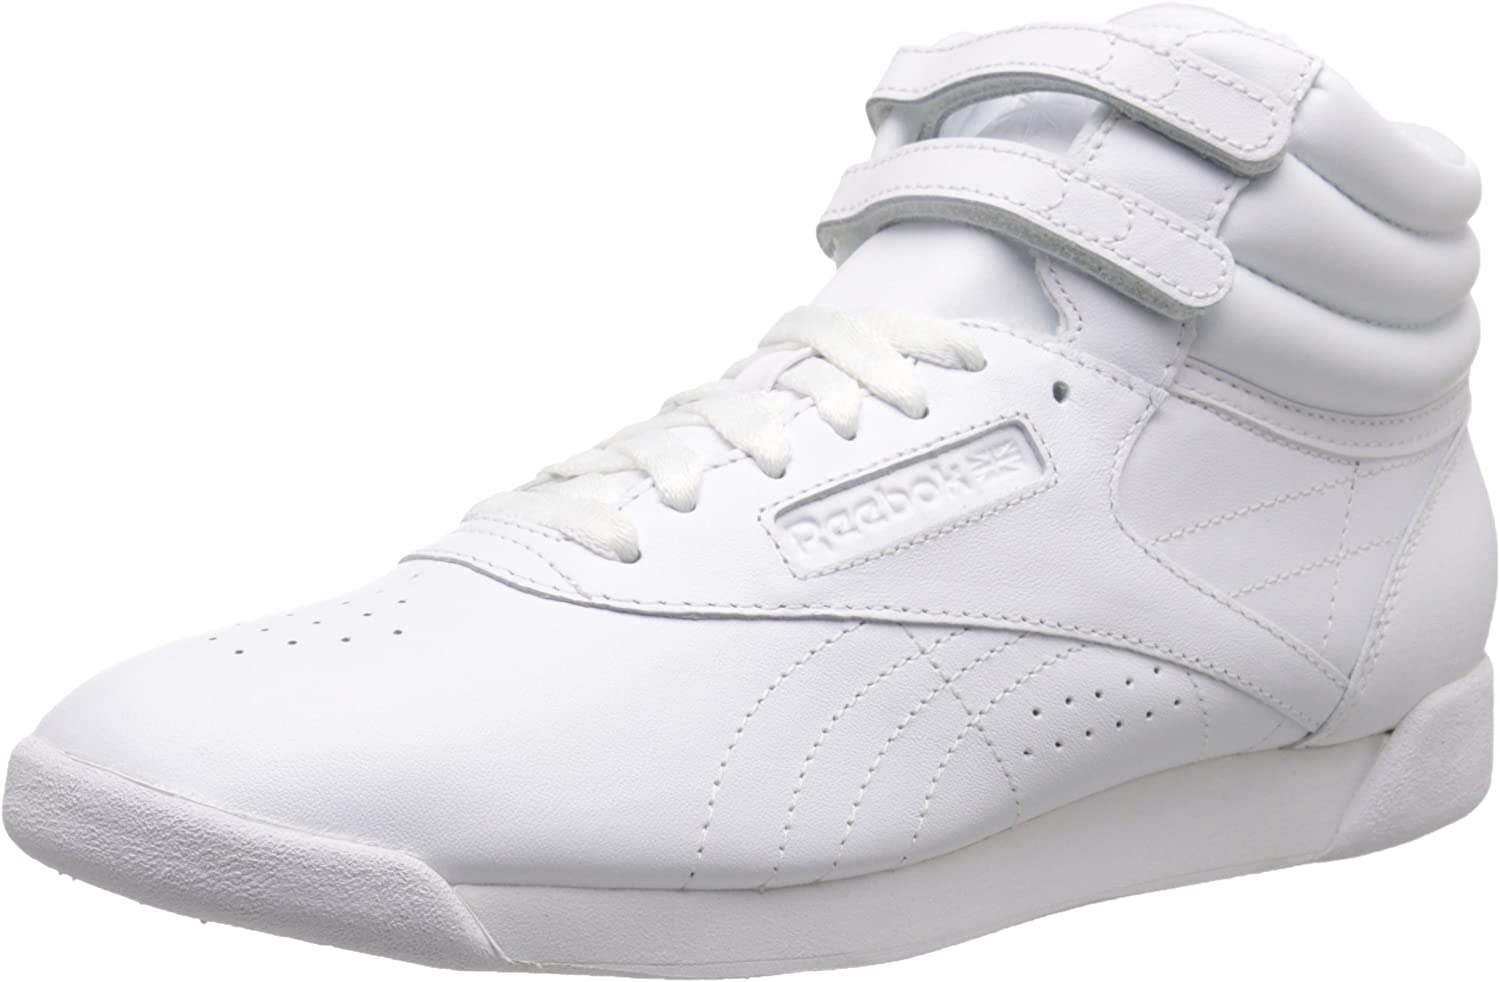 B0000ANC80 Reebok Women's Freestyle Hi Lace-Up Sneaker 71gQEYhilnL